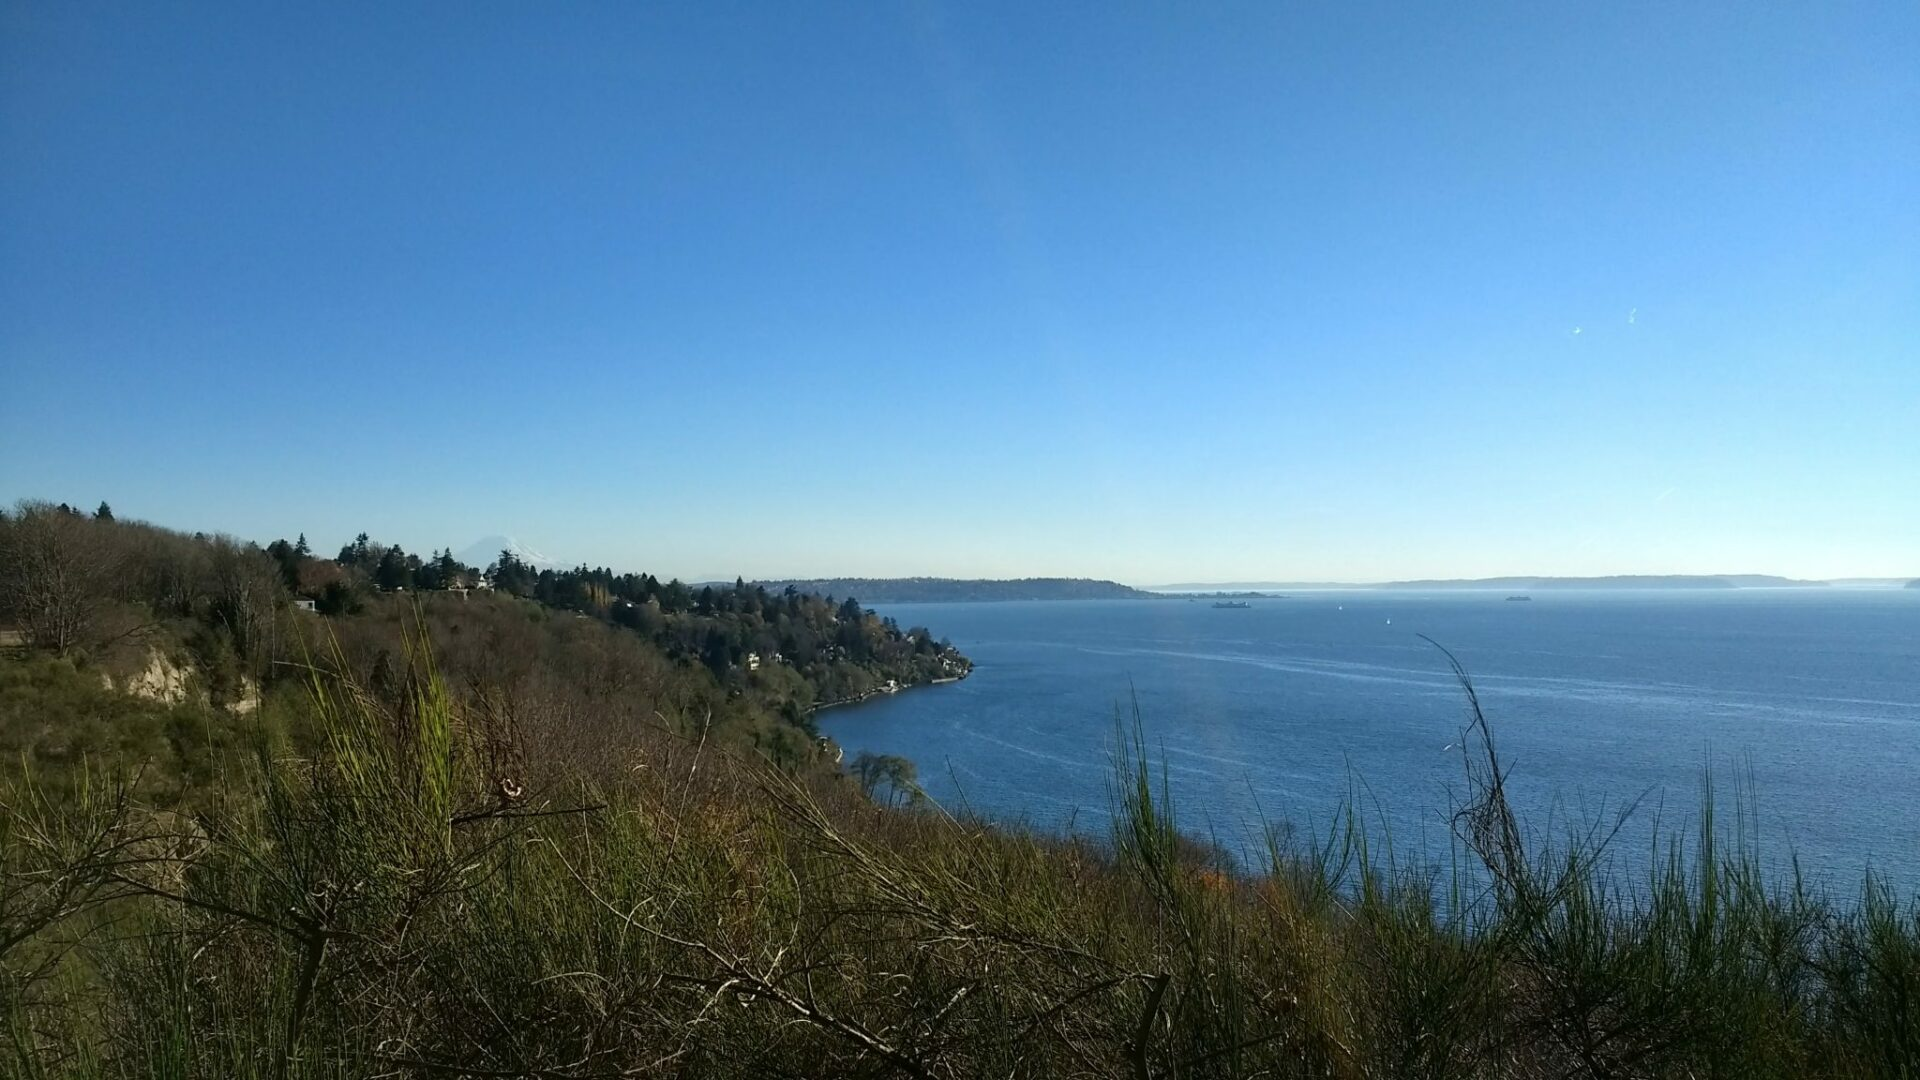 A hillside in front of blue water with islands in the background on a sunny day.